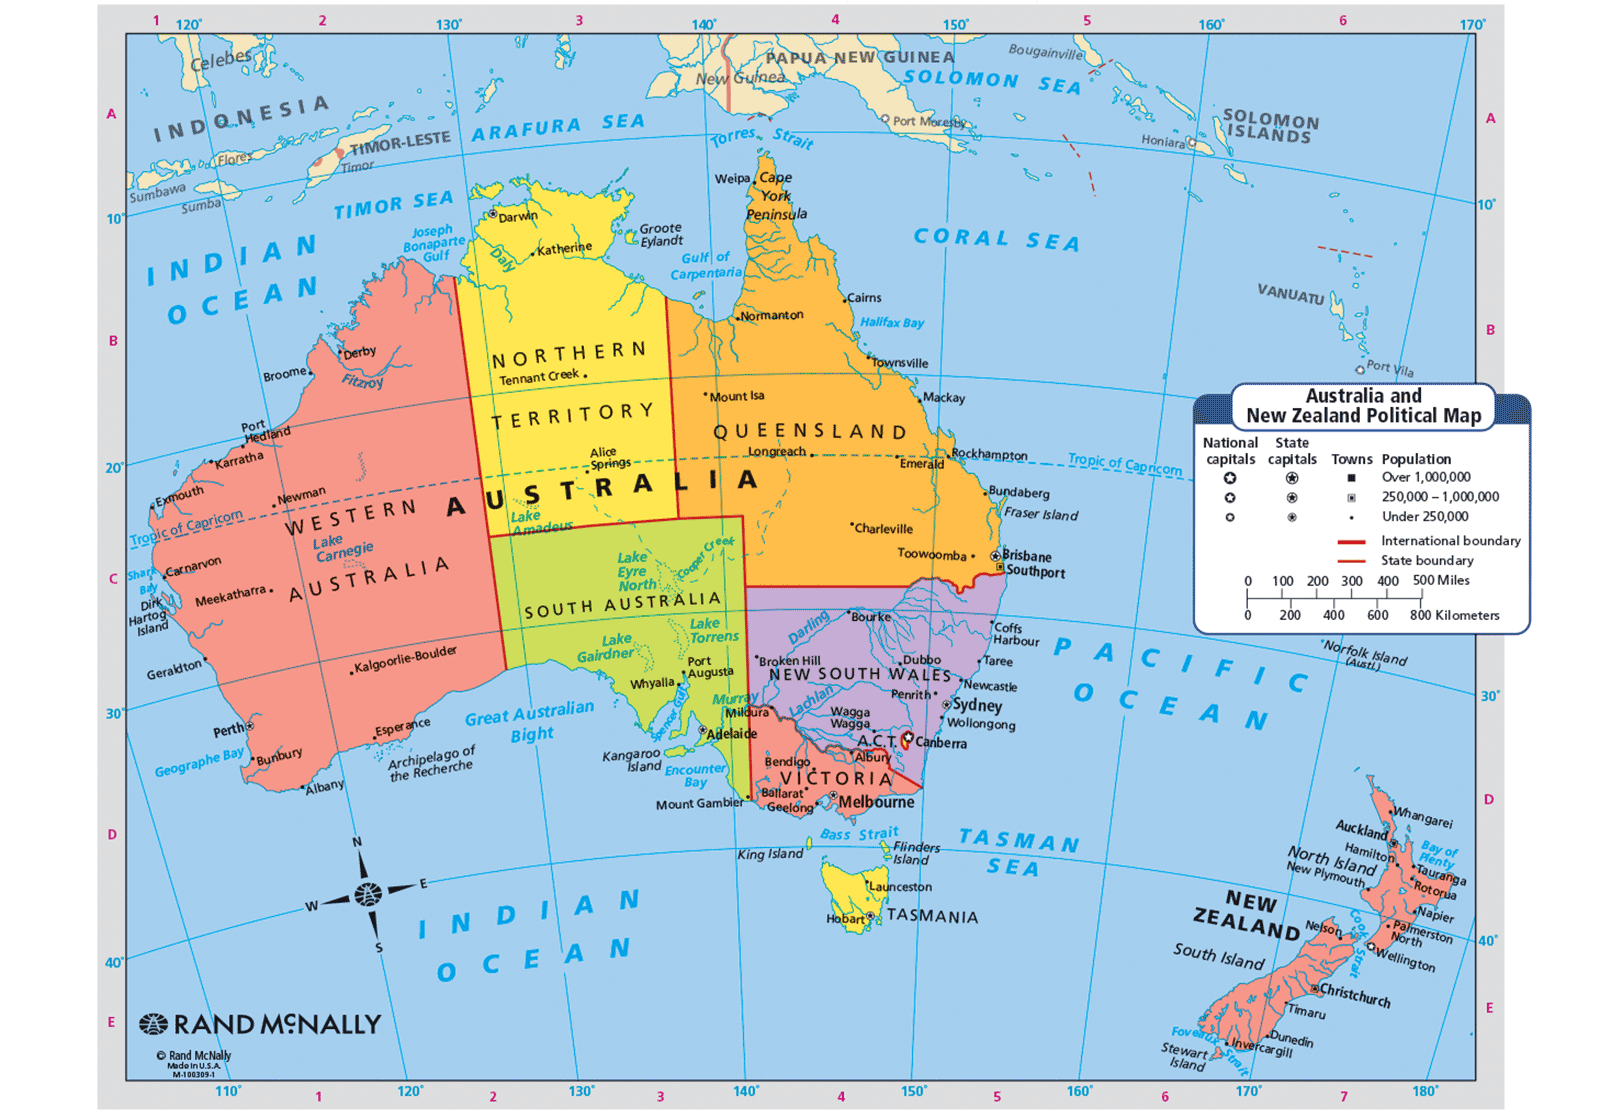 Map of new zealand and australia world map science pinterest map of new zealand and australia world map gumiabroncs Images